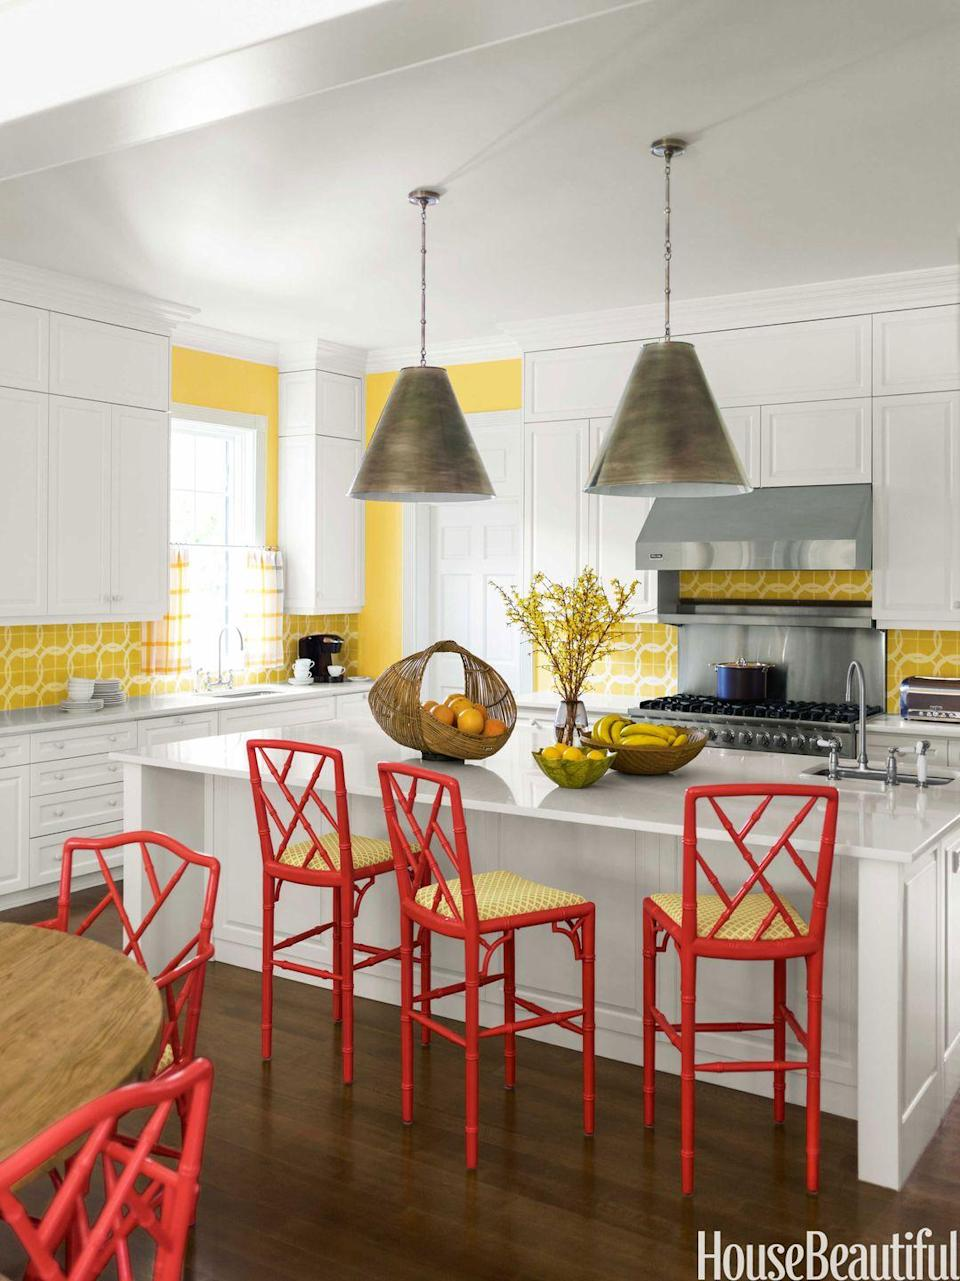 "<p>The tile backsplash was the inspiration for the coordinating yellow-glazed walls in a <a href=""https://www.housebeautiful.com/design-inspiration/house-tours/g1479/colorful-beach-house-decor-0913/?slide=3"" rel=""nofollow noopener"" target=""_blank"" data-ylk=""slk:Naples, Florida, kitchen"" class=""link rapid-noclick-resp"">Naples, Florida, kitchen</a> by Carrier & Company. Red stools make it feel even more vibrant and sharpen things up. </p>"